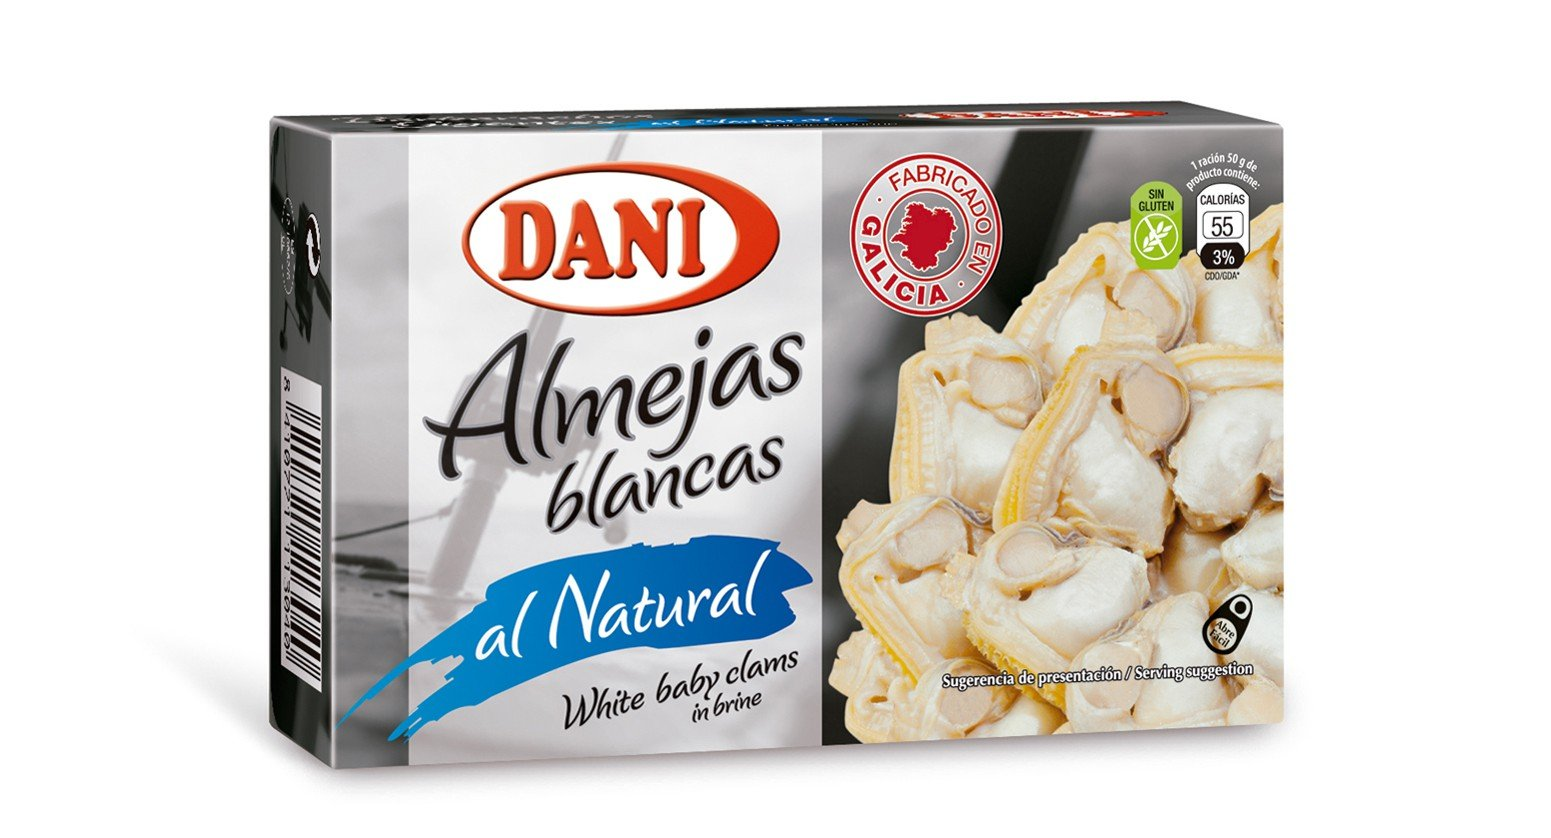 3x Pack Baby Clams in Brine (Water and Salt) Original From Galicia Spain Gluten Free (Almejas)